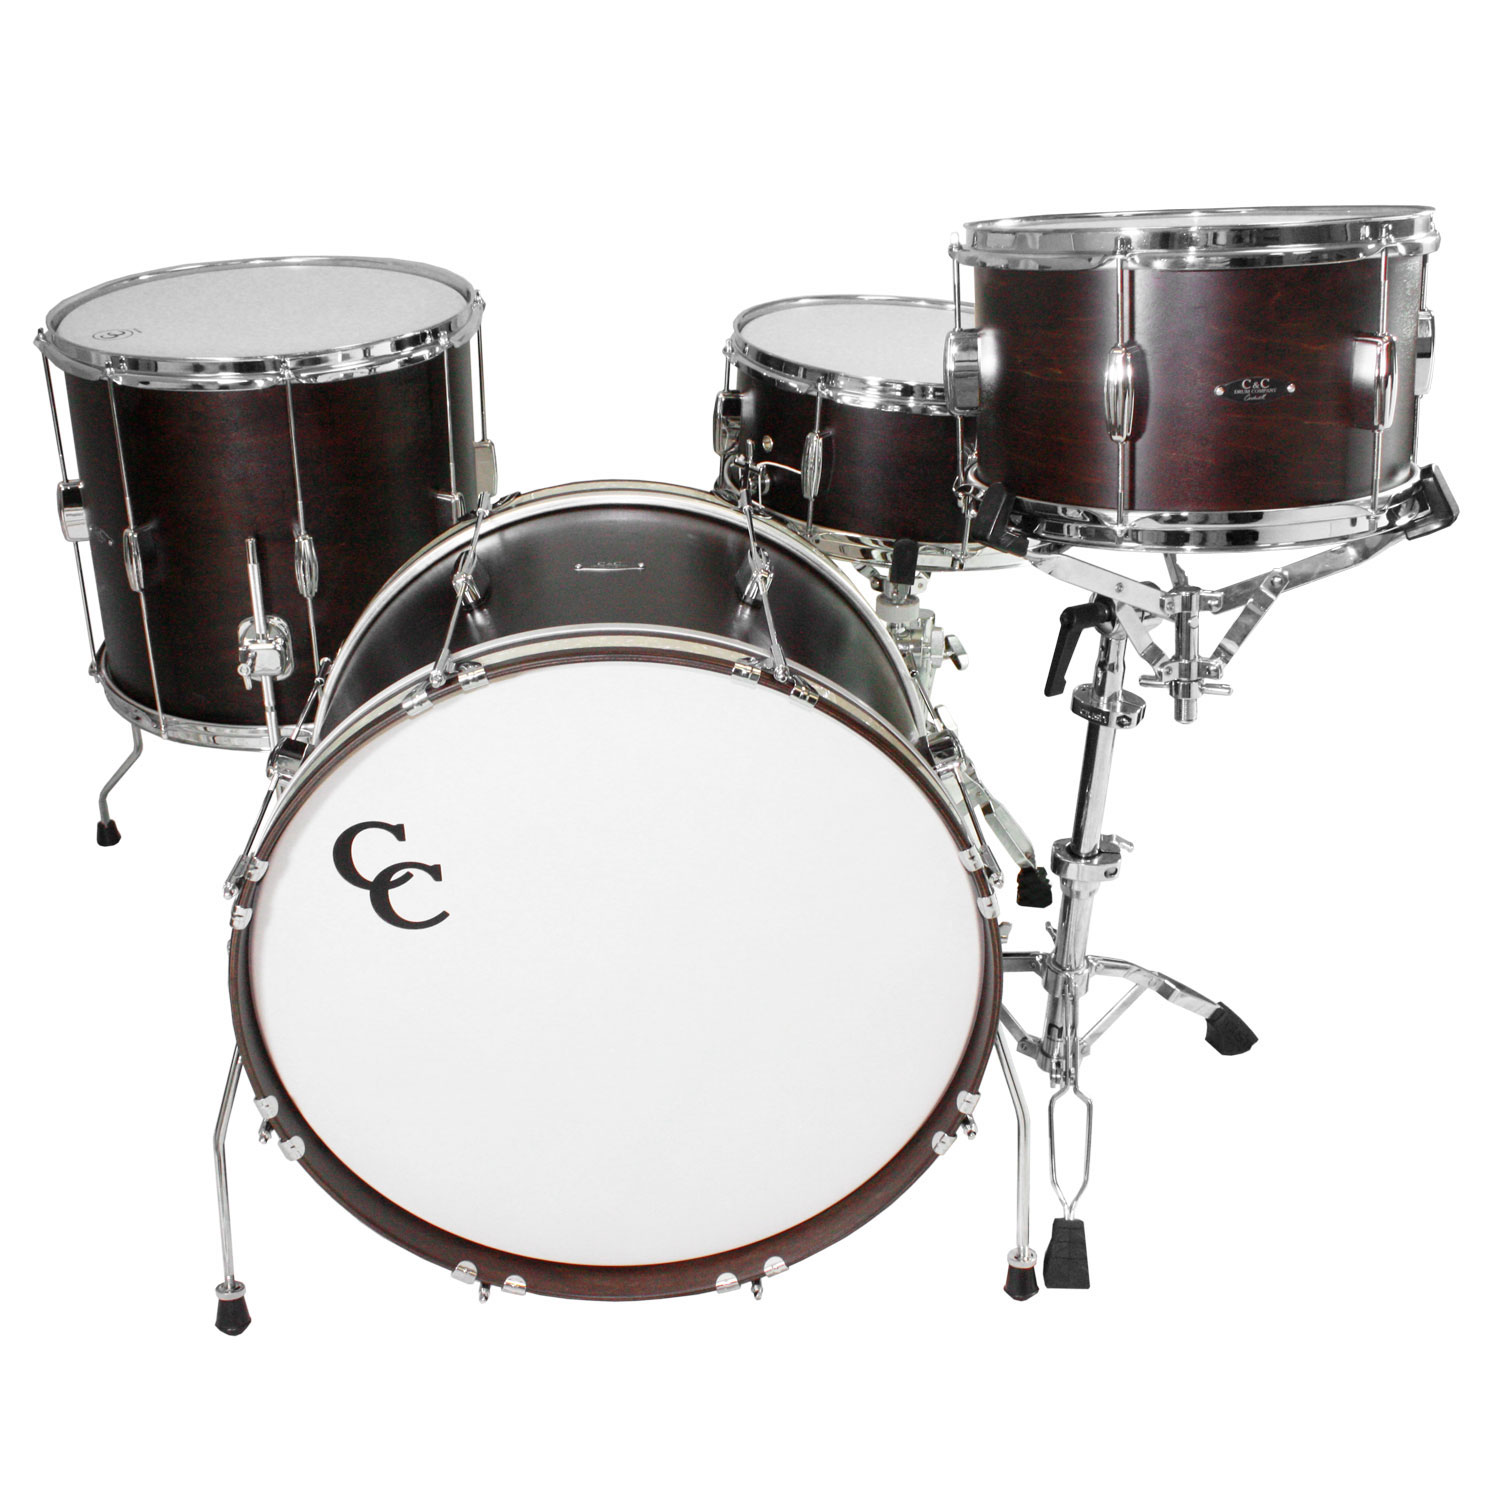 c c drum player date ii big beat 4 piece drum set shell pack 22 bass 14 snare 13 16 toms. Black Bedroom Furniture Sets. Home Design Ideas